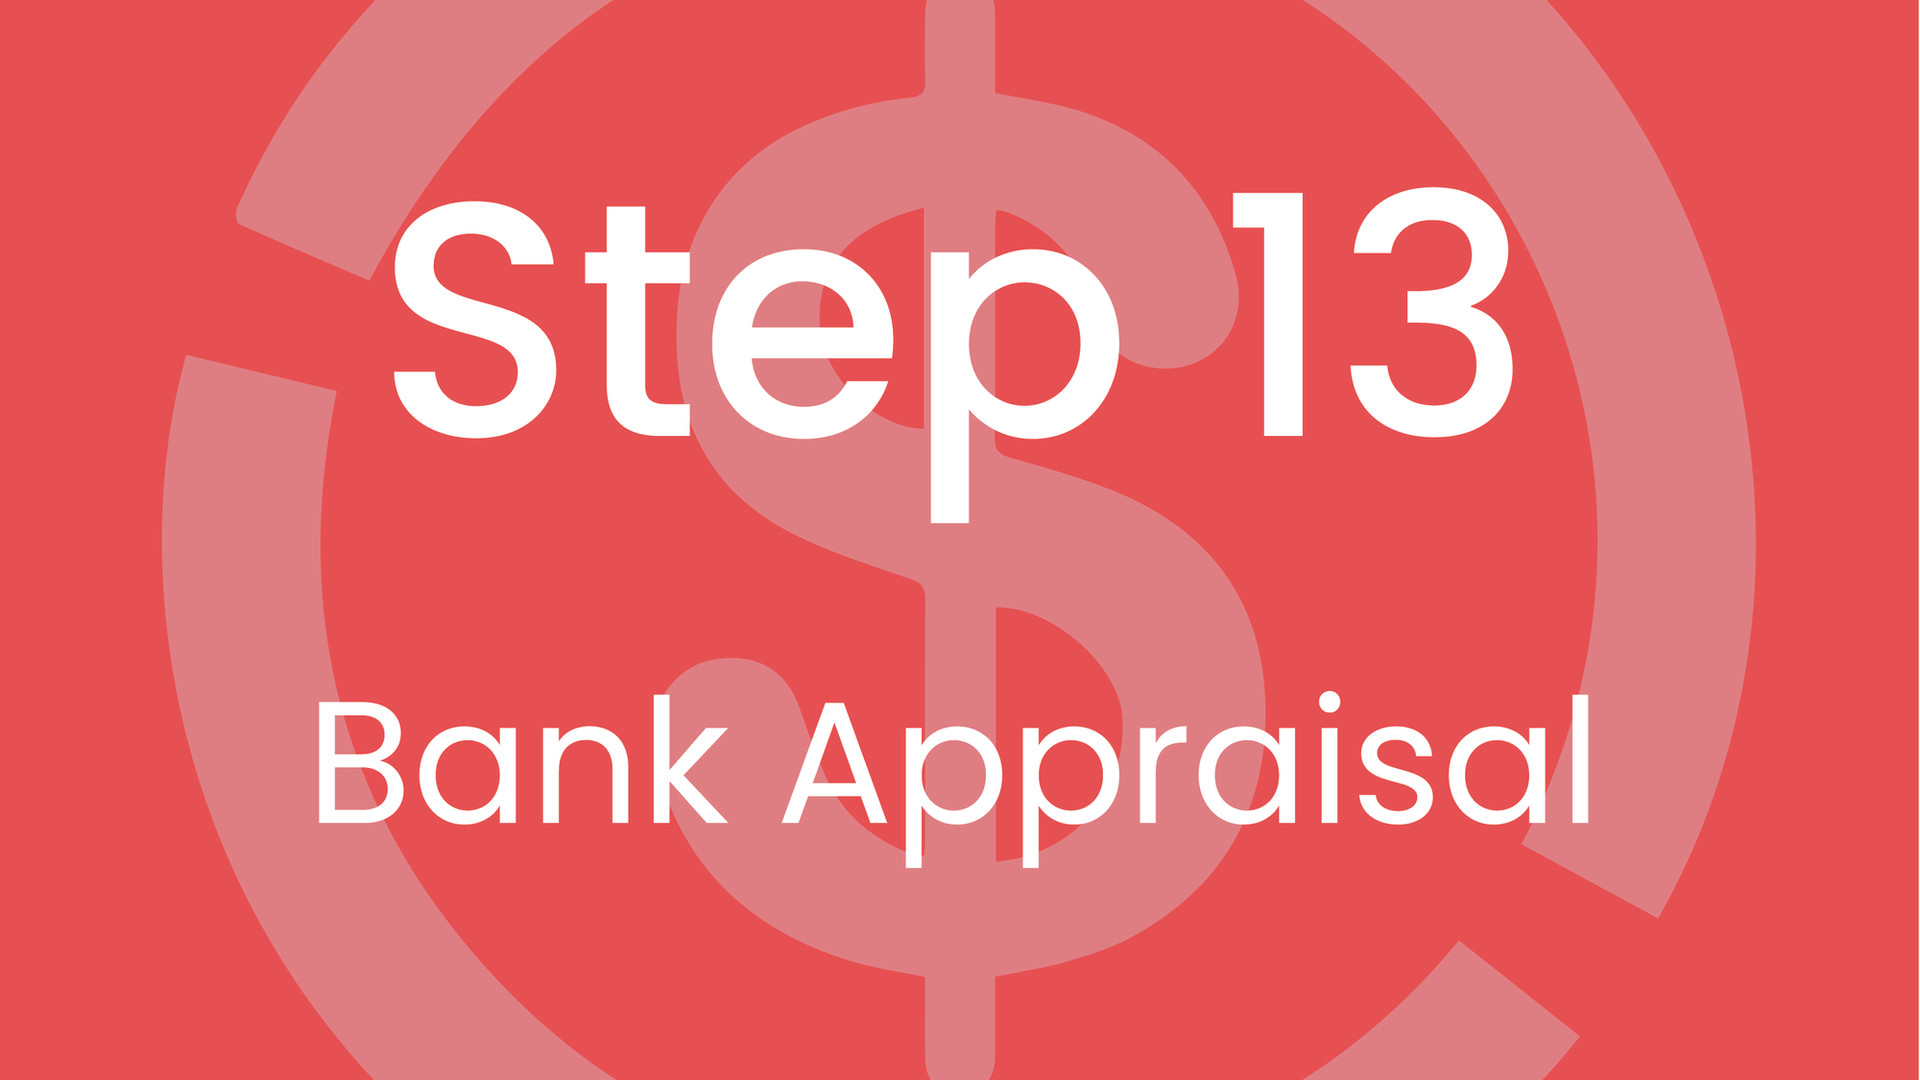 Step 13: Bank Appraisal